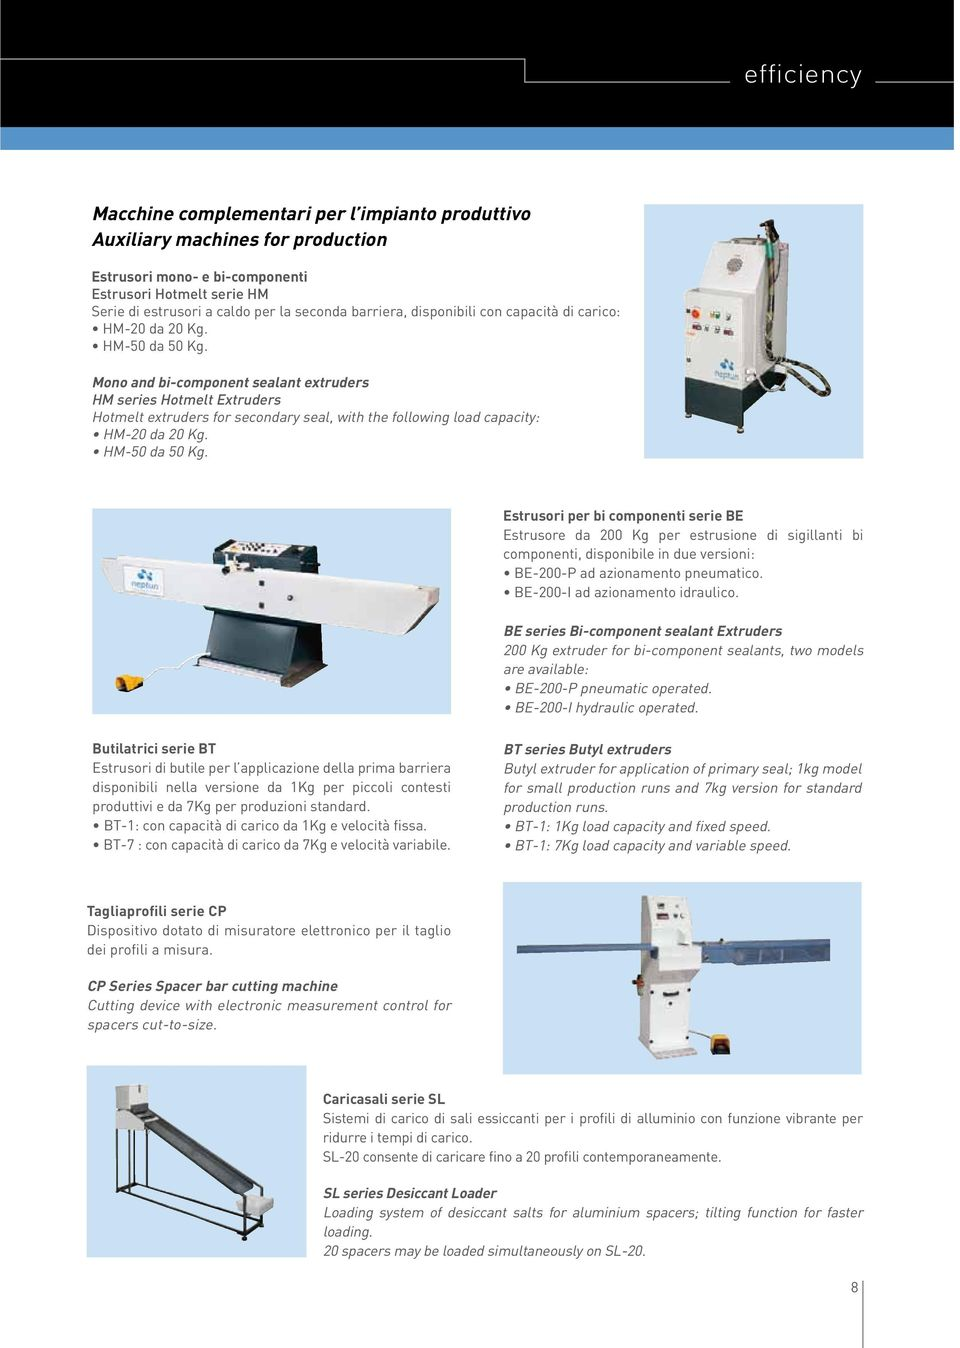 Mono and bi-component sealant extruders HM series Hotmelt Extruders Hotmelt extruders for secondary seal, with the following load capacity: HM-20 da 20 Kg. HM-50 da 50 Kg.